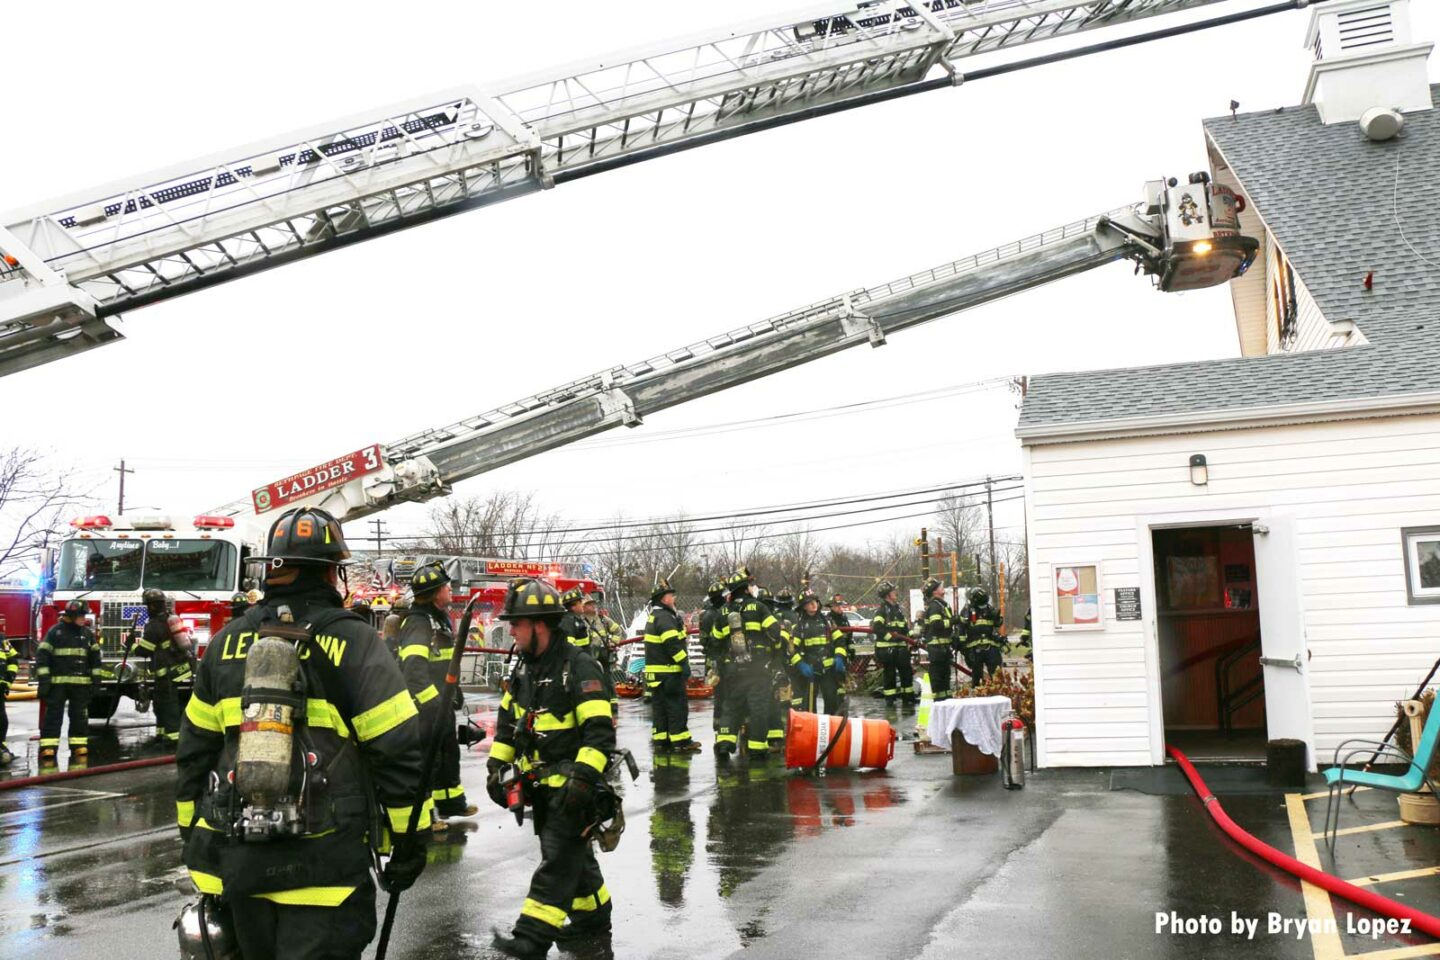 Multiple aerials extended at Long Island church fire